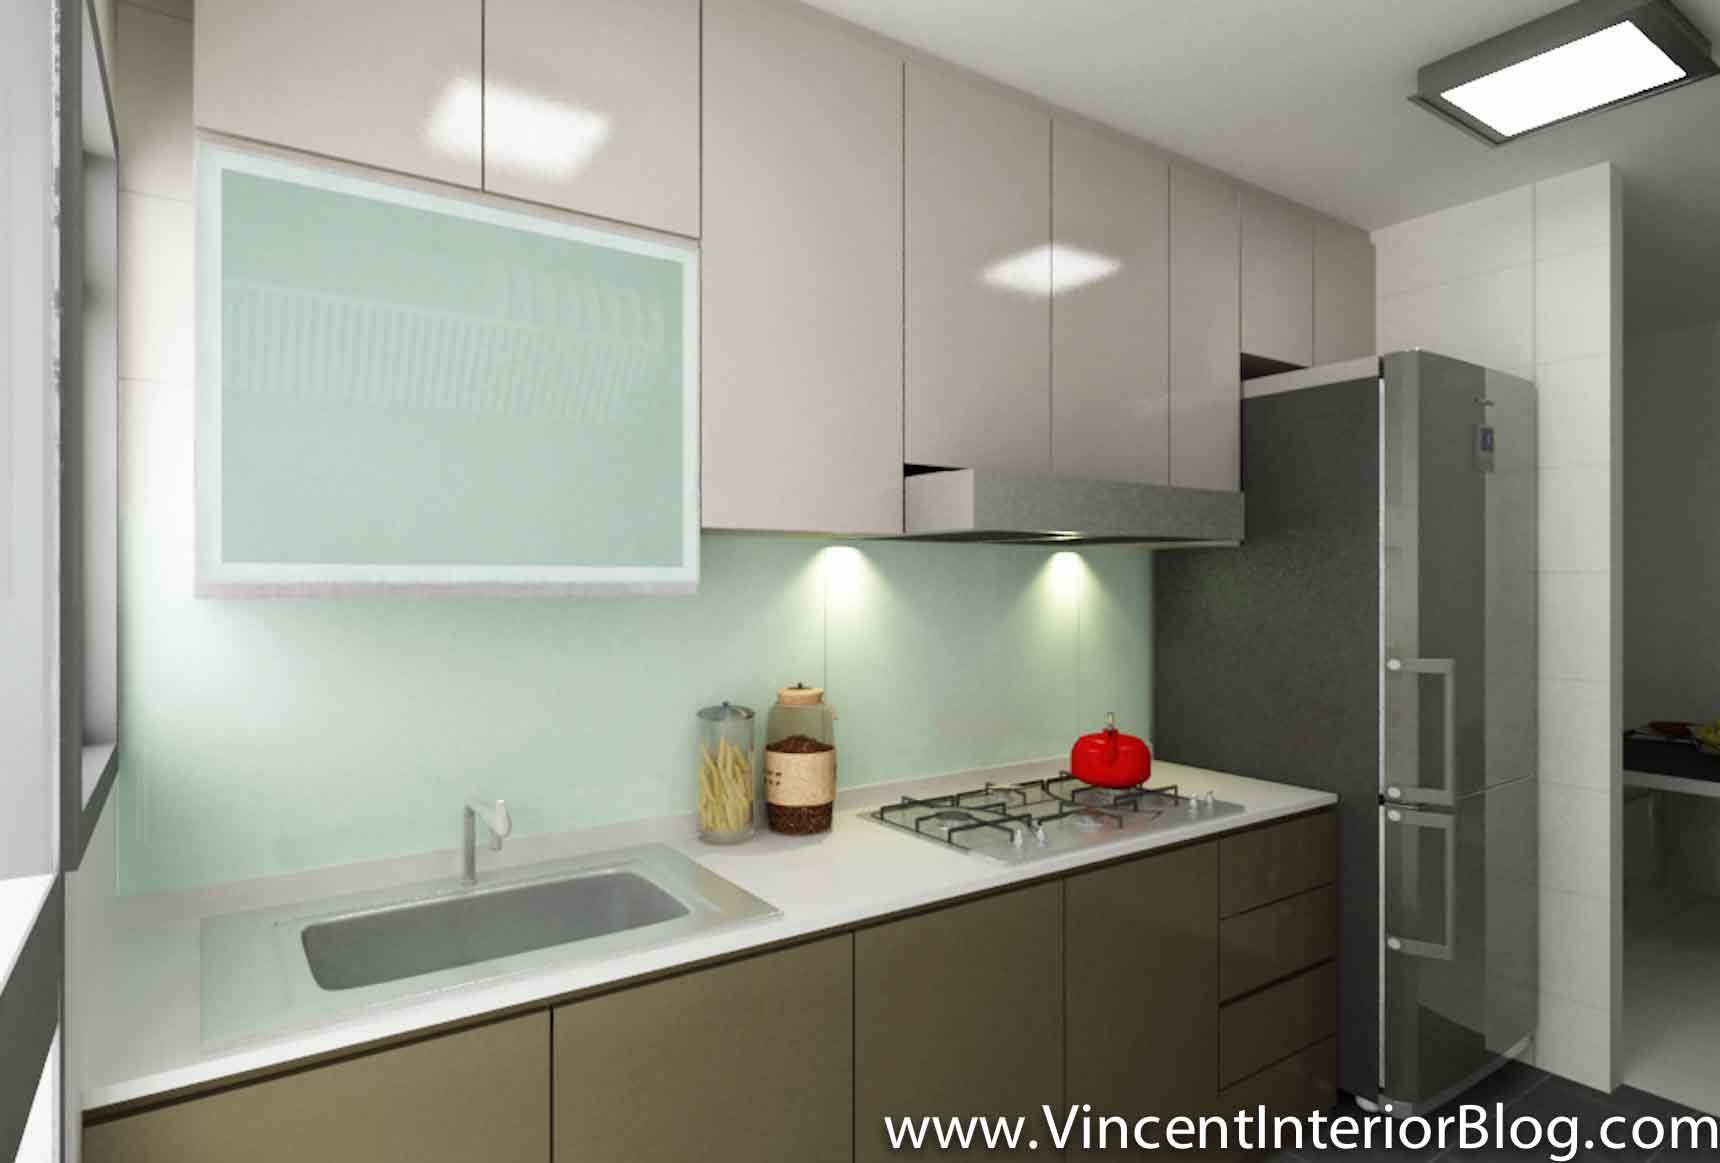 Kitchen Cabinet Price List Singapore Small Singapore Kitchen Layout Google Search Small